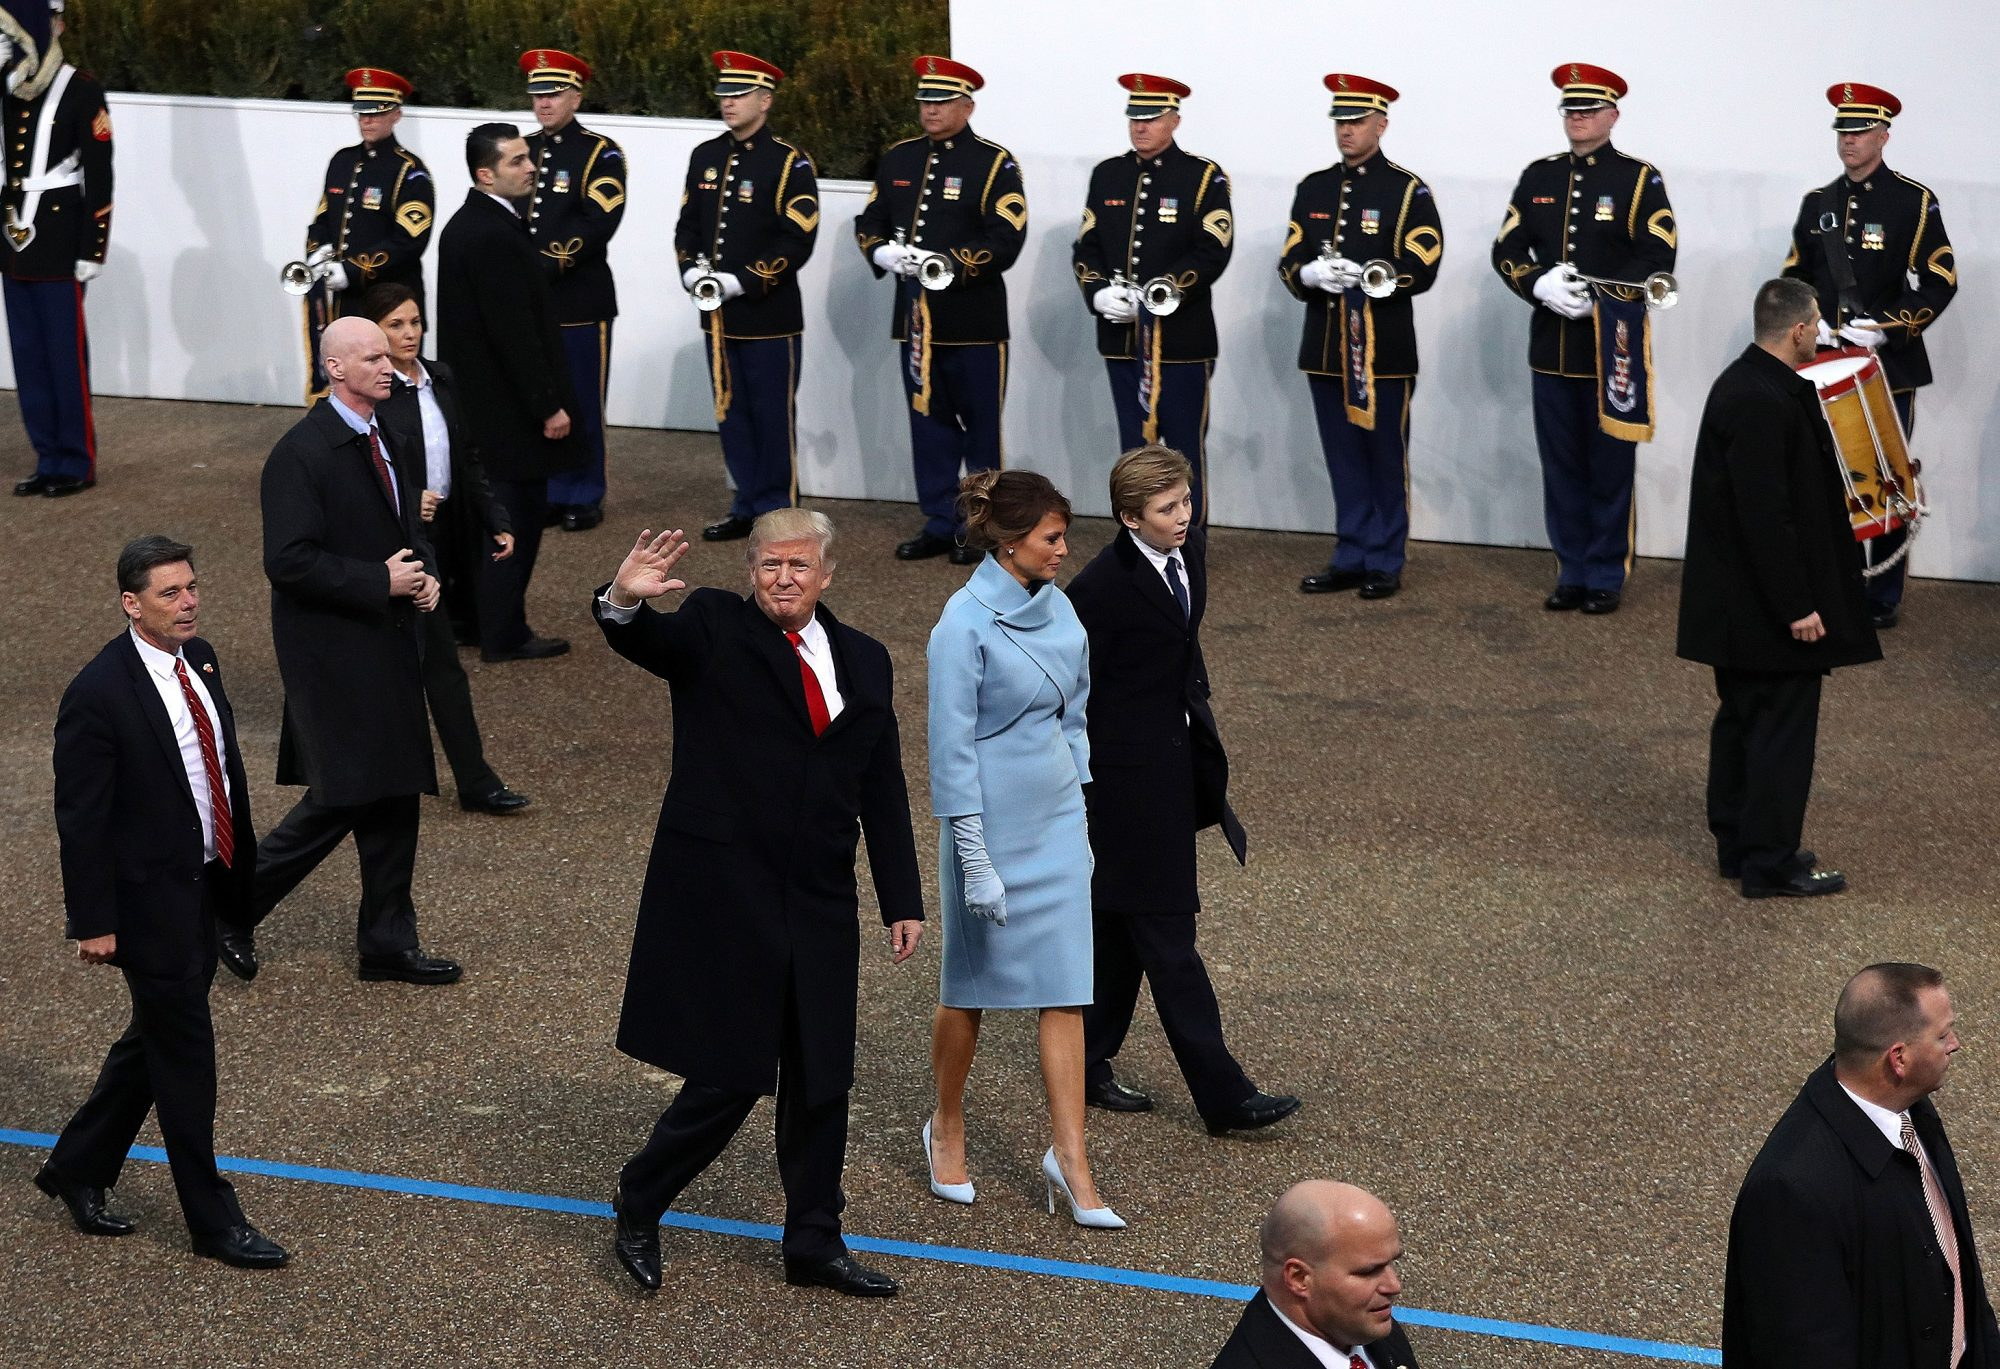 WASHINGTON, DC - JANUARY 20: (L-R) U.S. President Donald Trump waves to supporters as he walks the parade route with first lady Melania Trump and son Barron Trump past the main reviewing stand in front of the White House during the Inaugural Parade on January 20, 2017 in Washington, DC. Donald J. Trump was sworn in today as the 45th president of the United States. (Photo by Patrick Smith/Getty Images) Getty Images North America 693719551 632227502